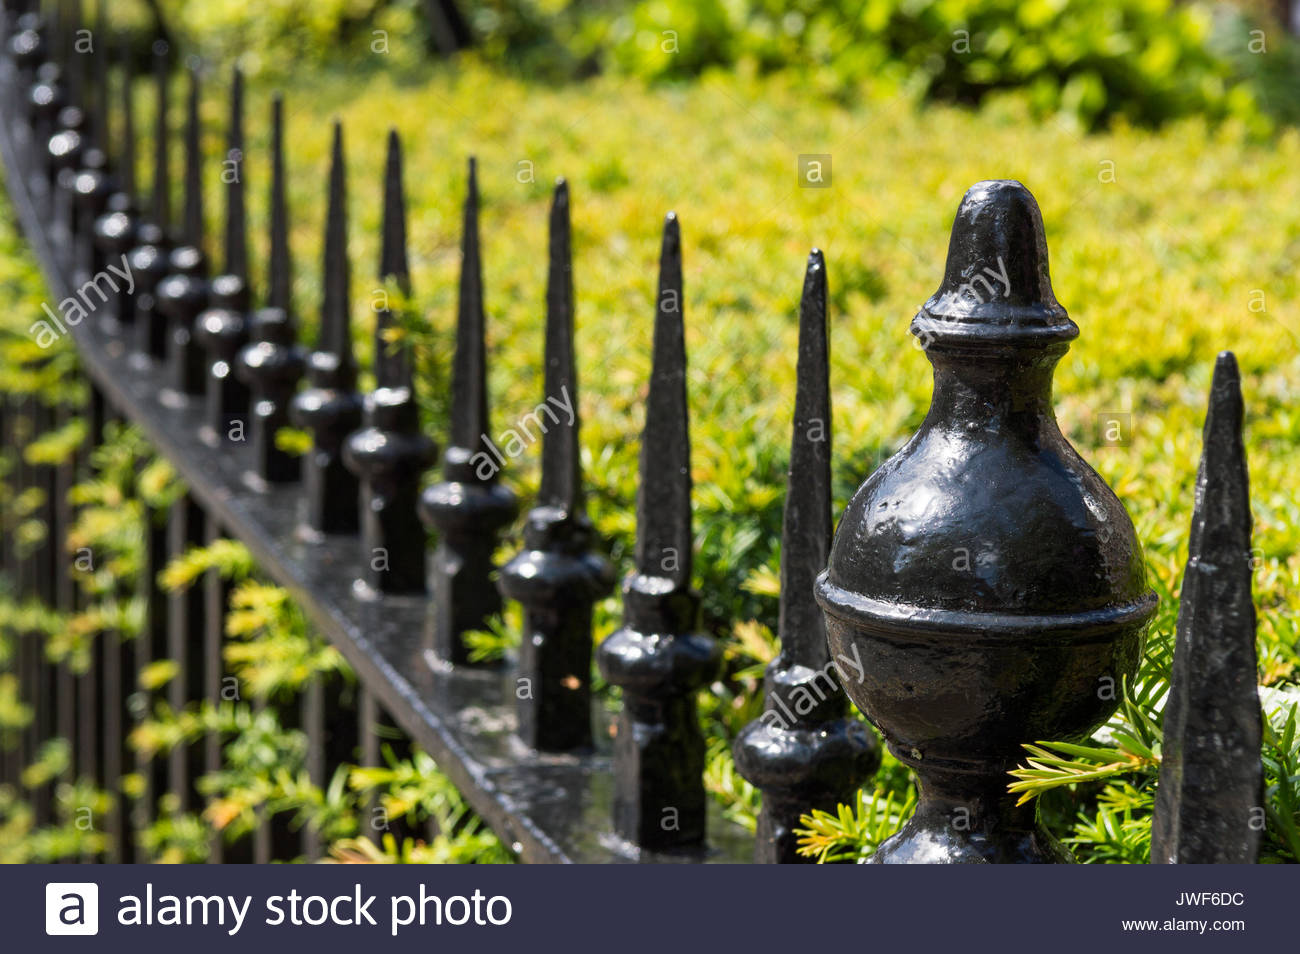 Finial Fence Iron Stock Photos & Finial Fence Iron Stock Images - Alamy